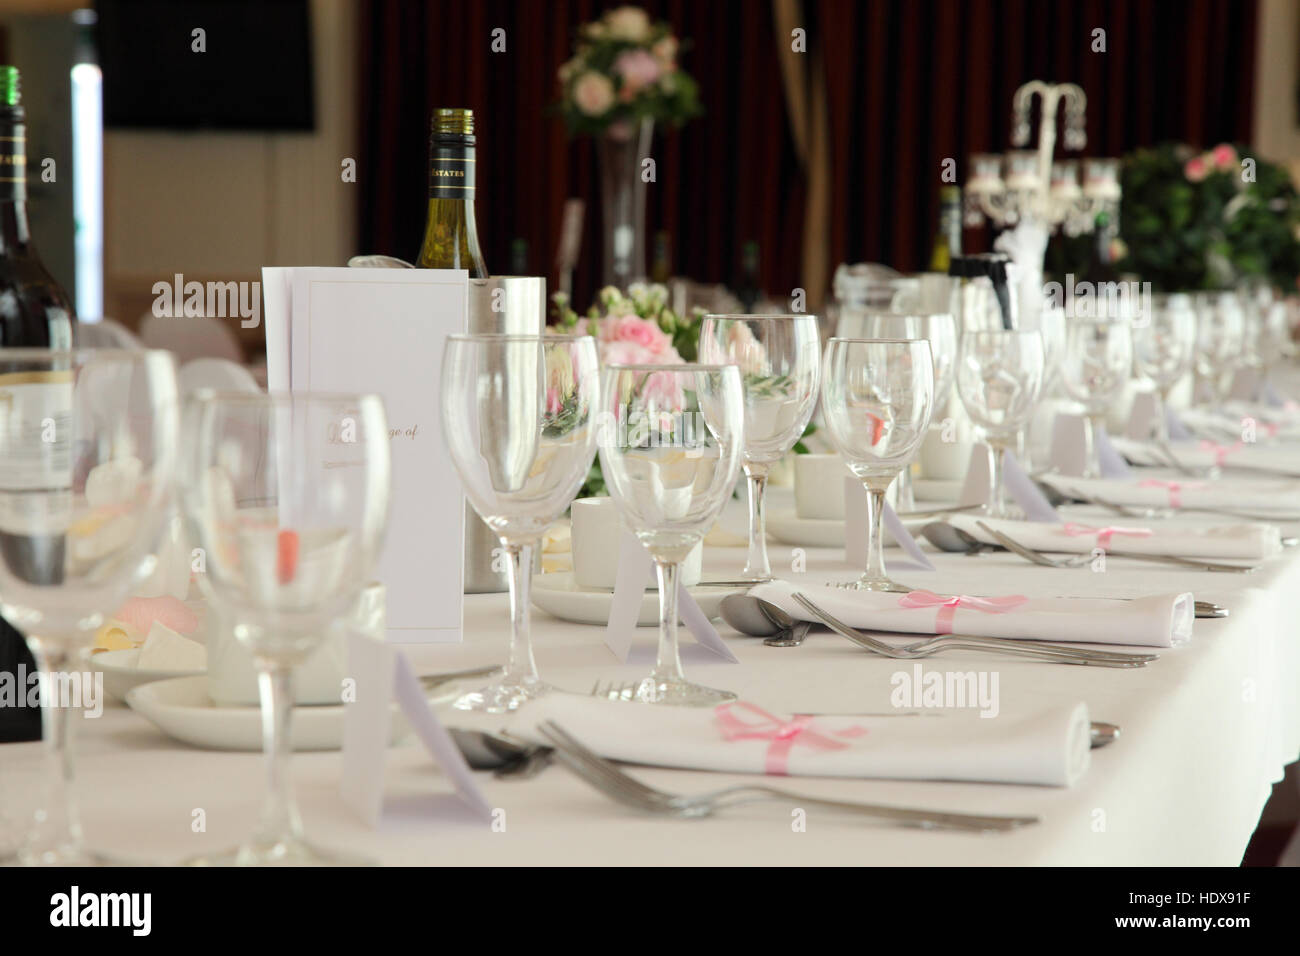 Wedding Table With Plates Stock Photos & Wedding Table With Plates ...